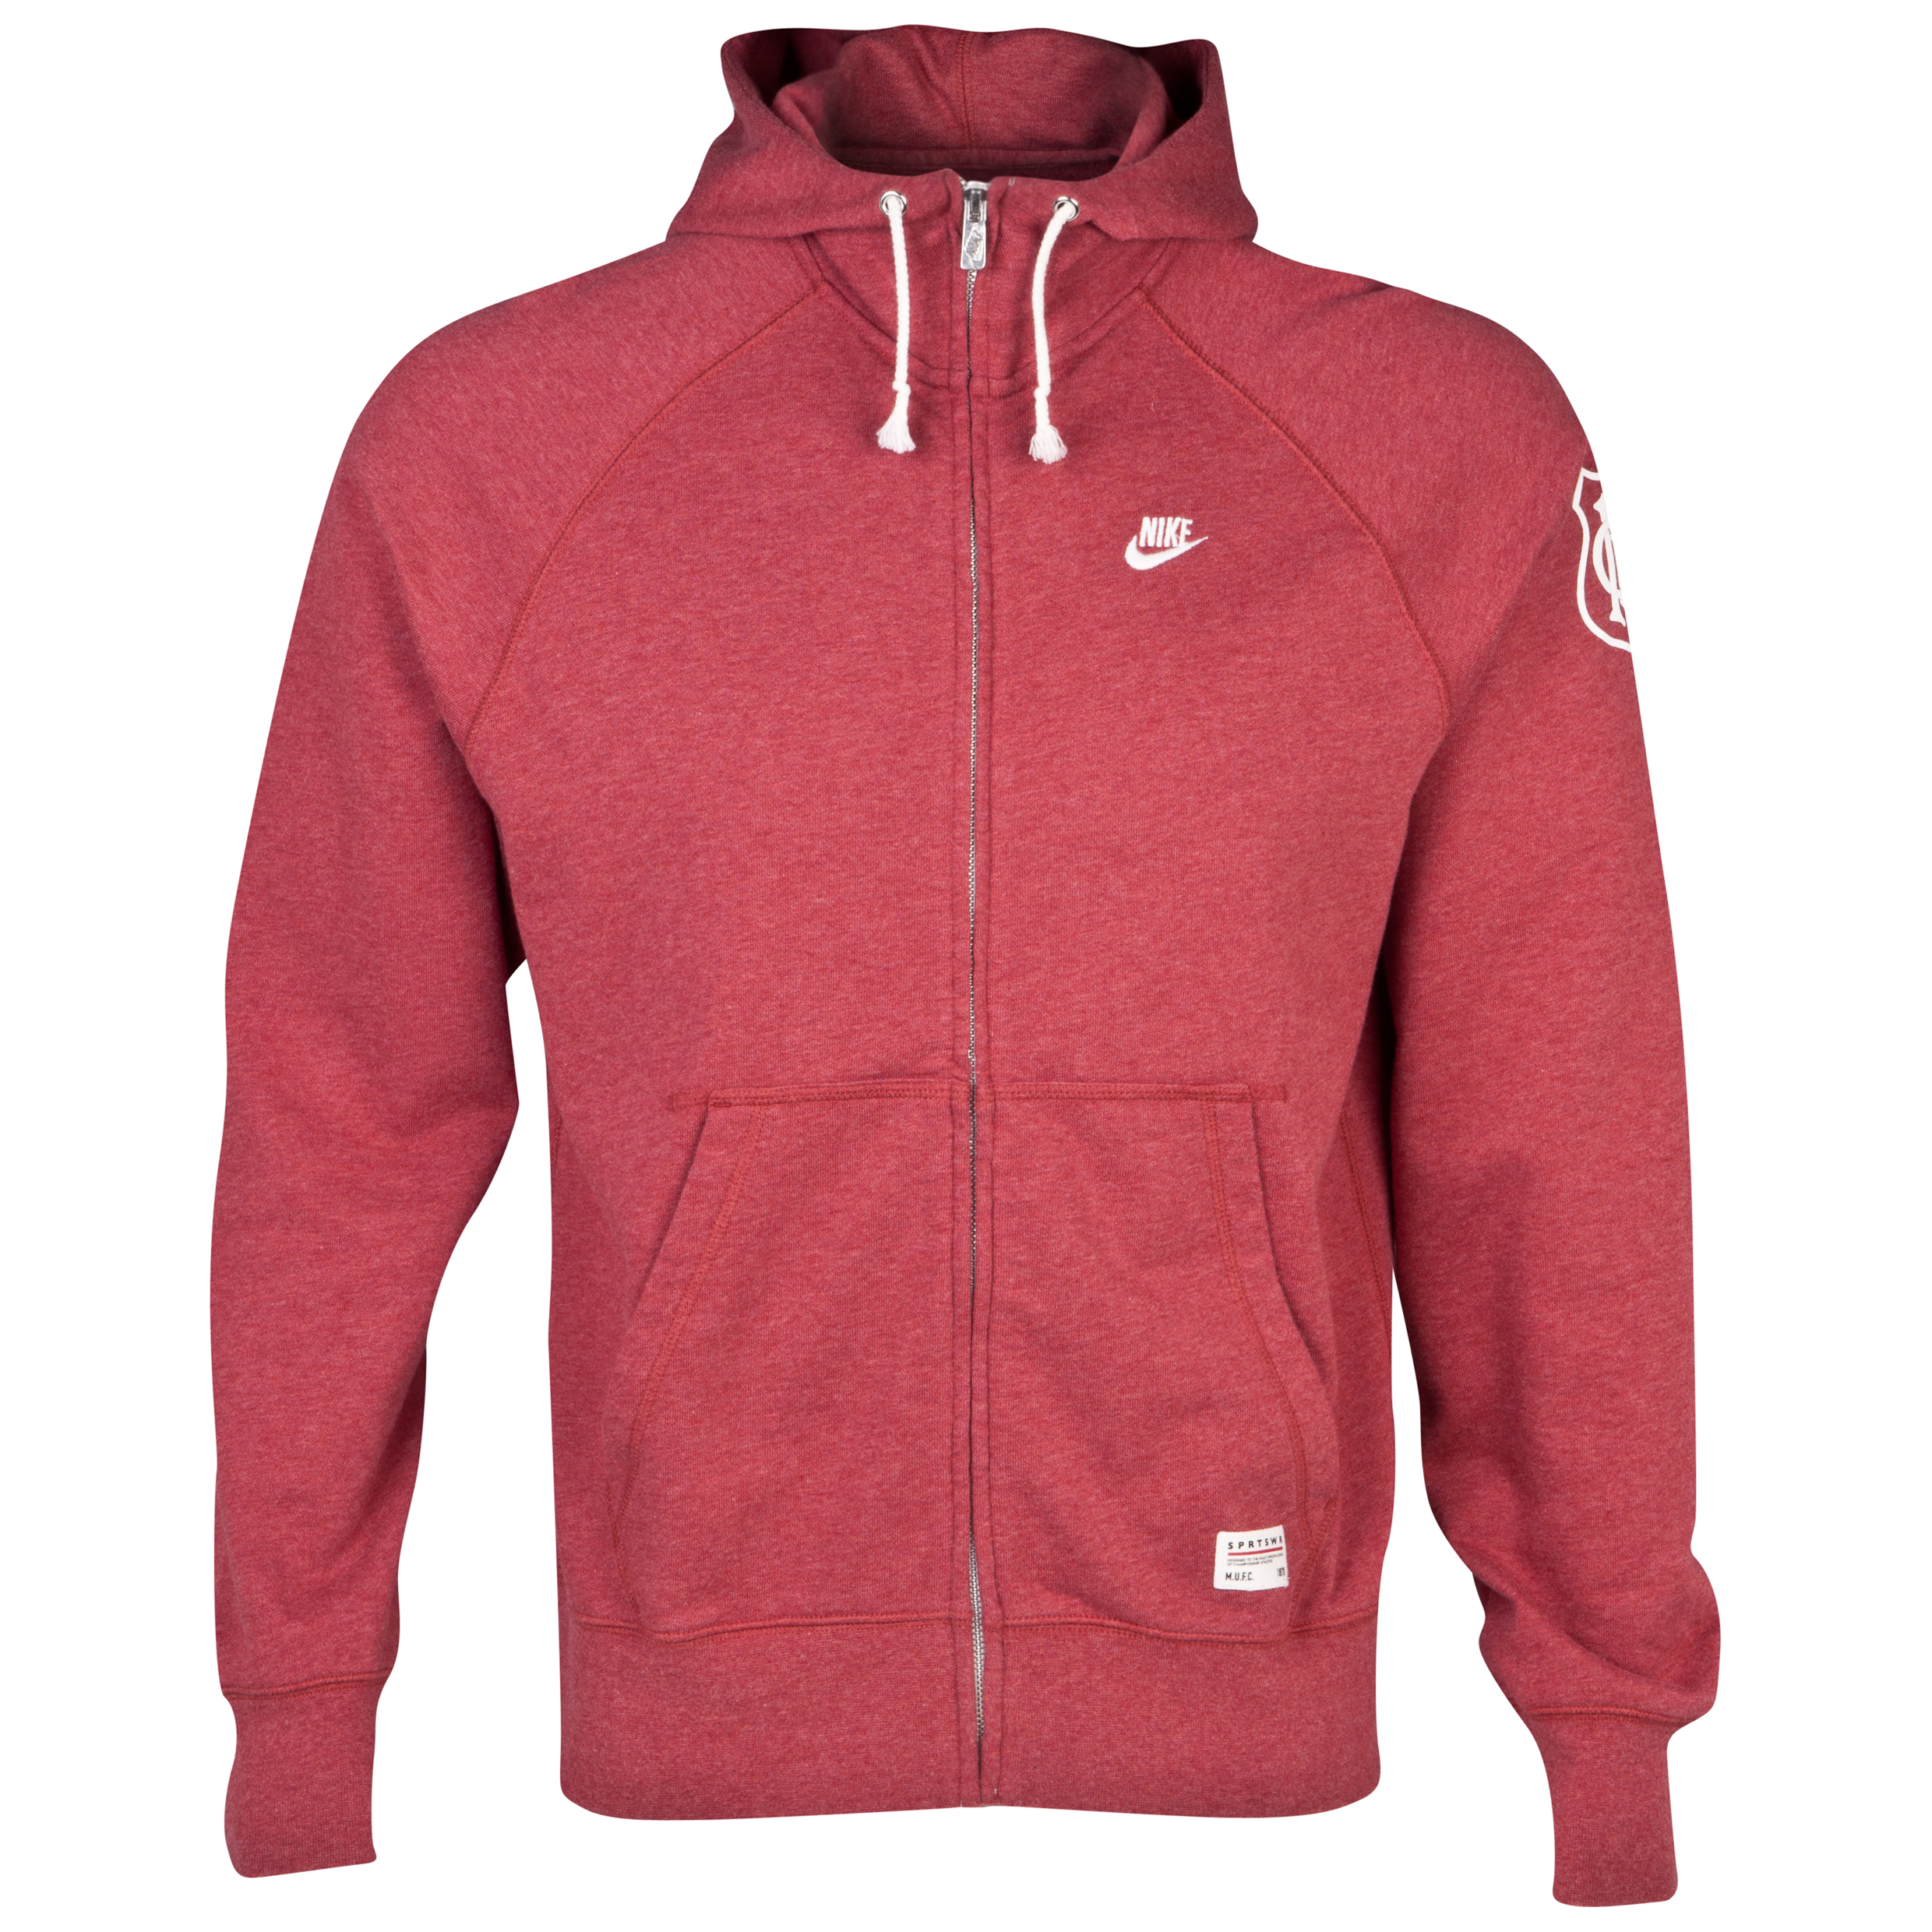 Manchester United Vintage AW77 Full Zip Hooded Top - Light Gym Red Heather/Sail